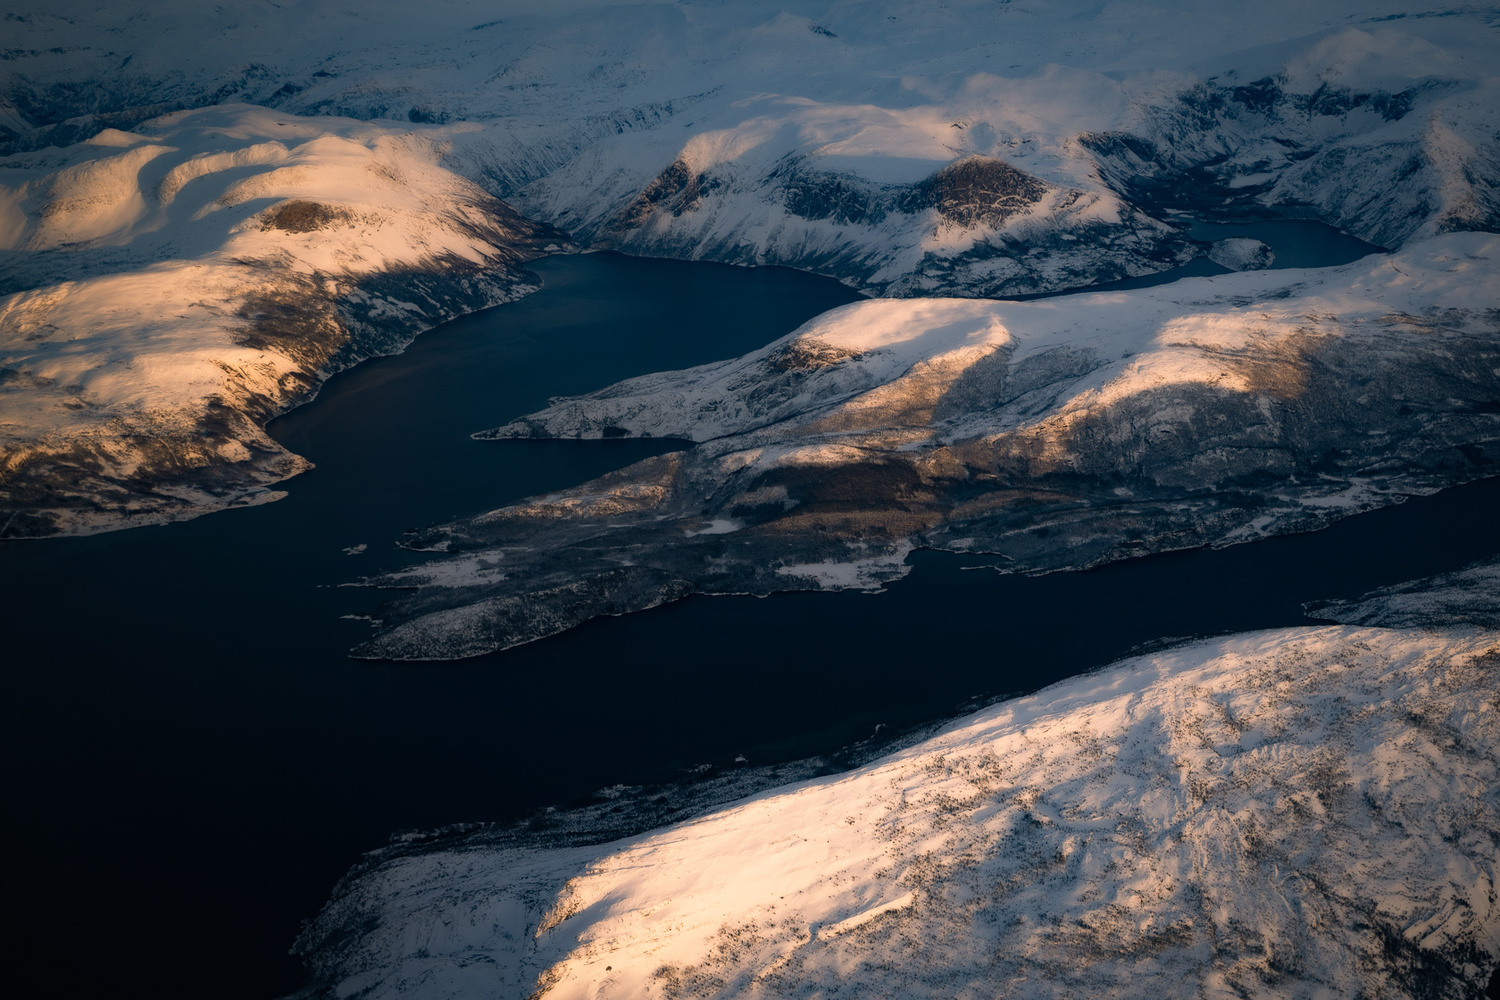 Norway from the sky by MasaHiro IKEDA